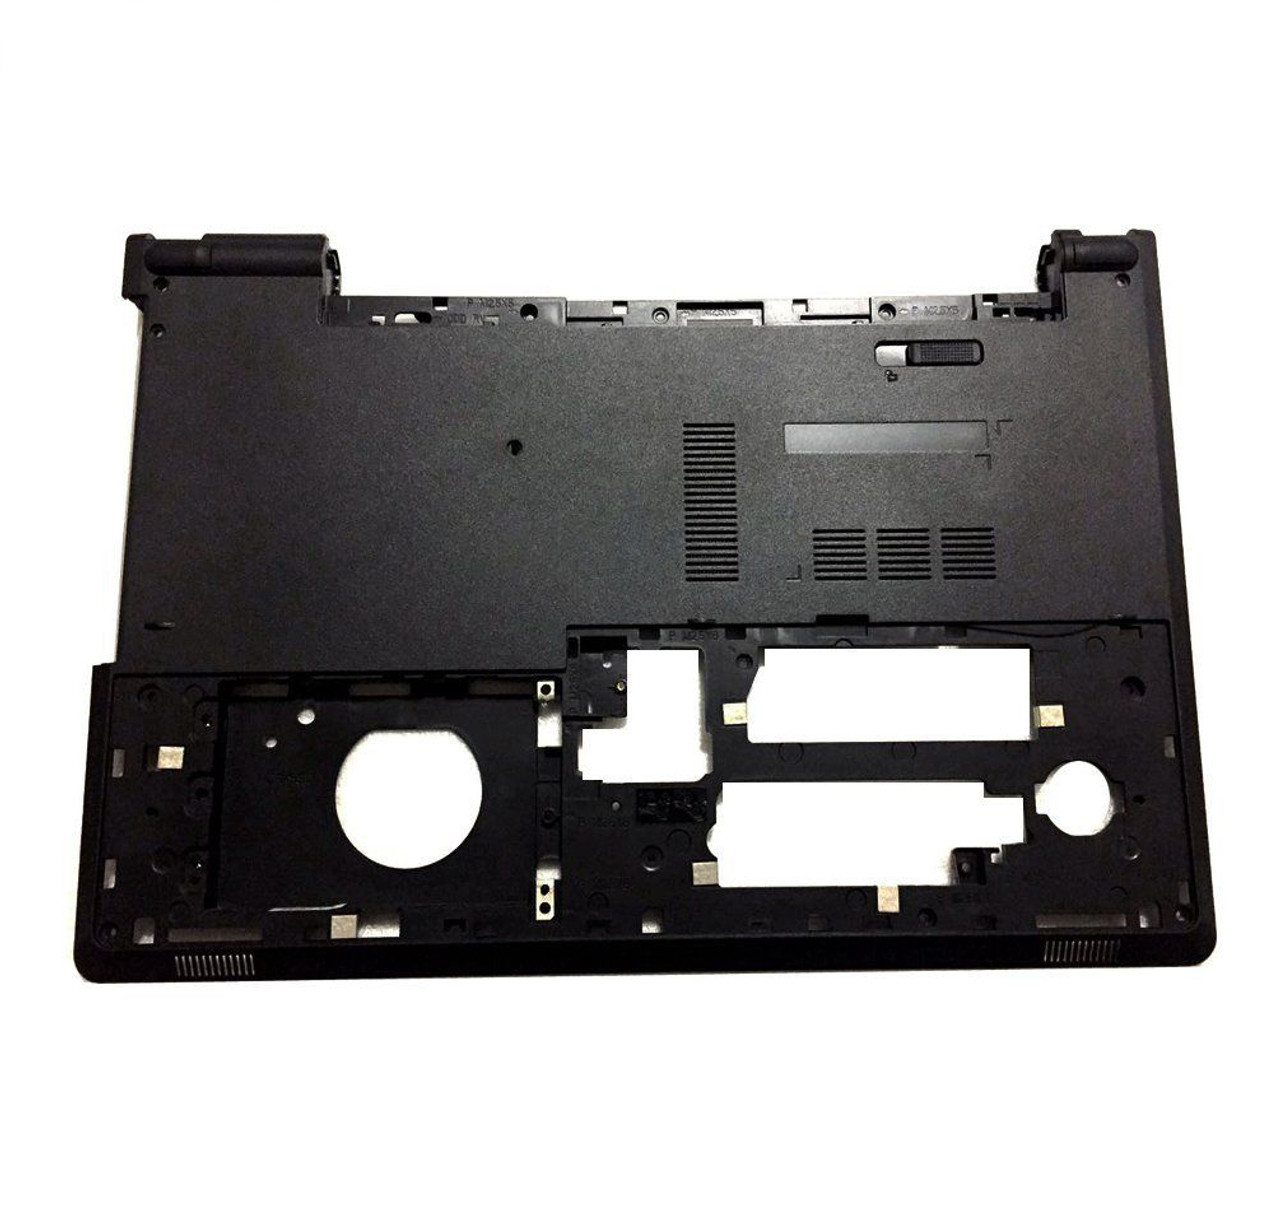 New For Dell Inspiron 5000 5555 5558 5559 LCD Back Cover 02FWTT 2FWTT